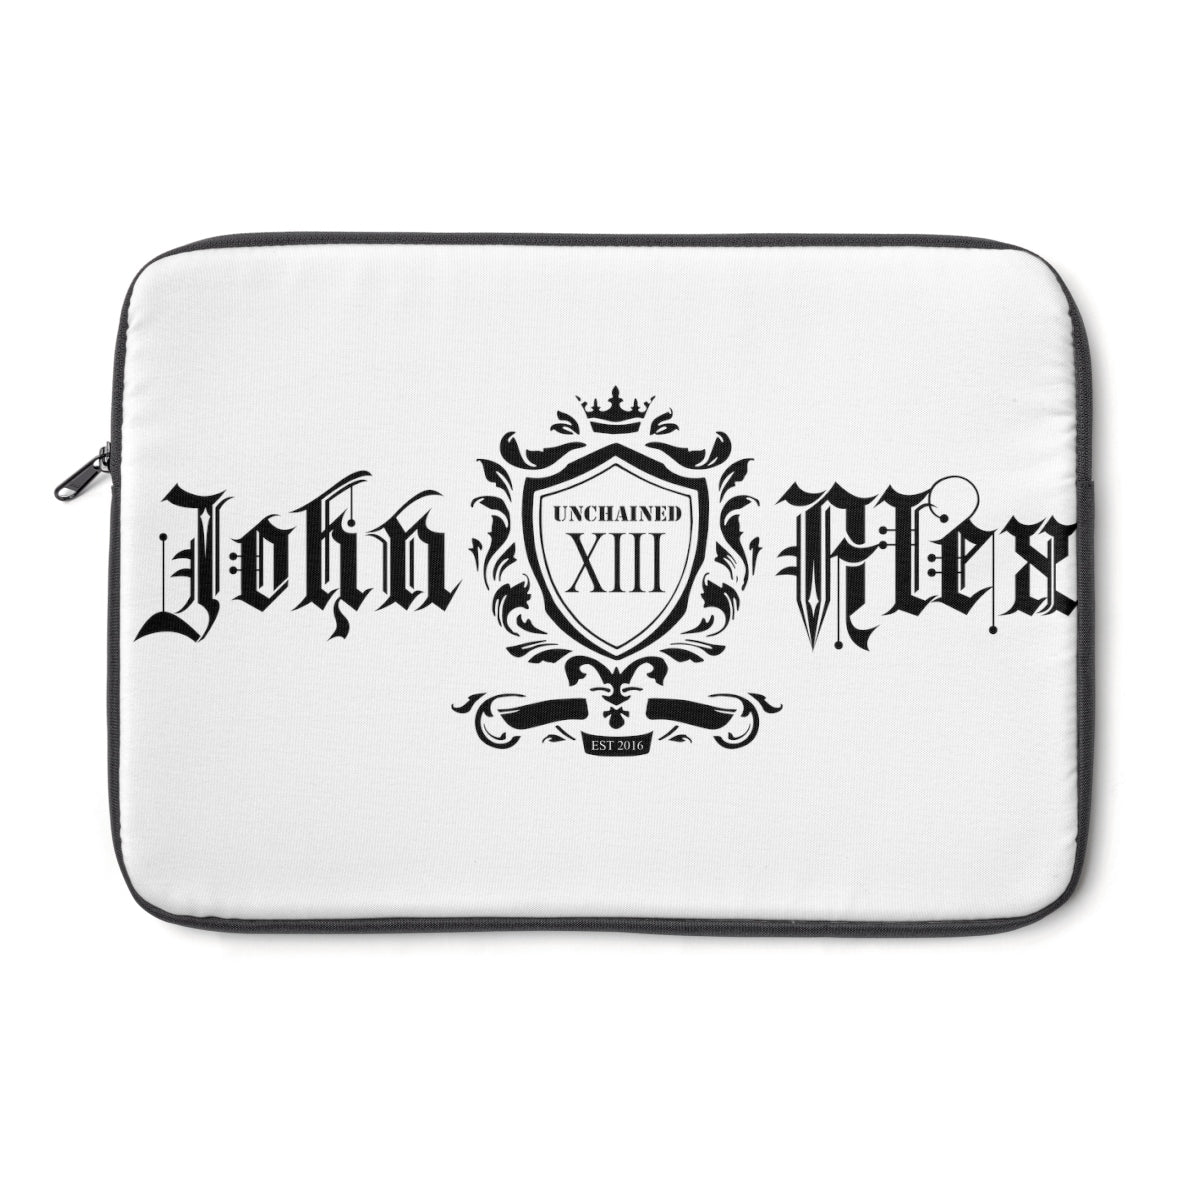 JohnAlex XIII  Laptop Sleeve